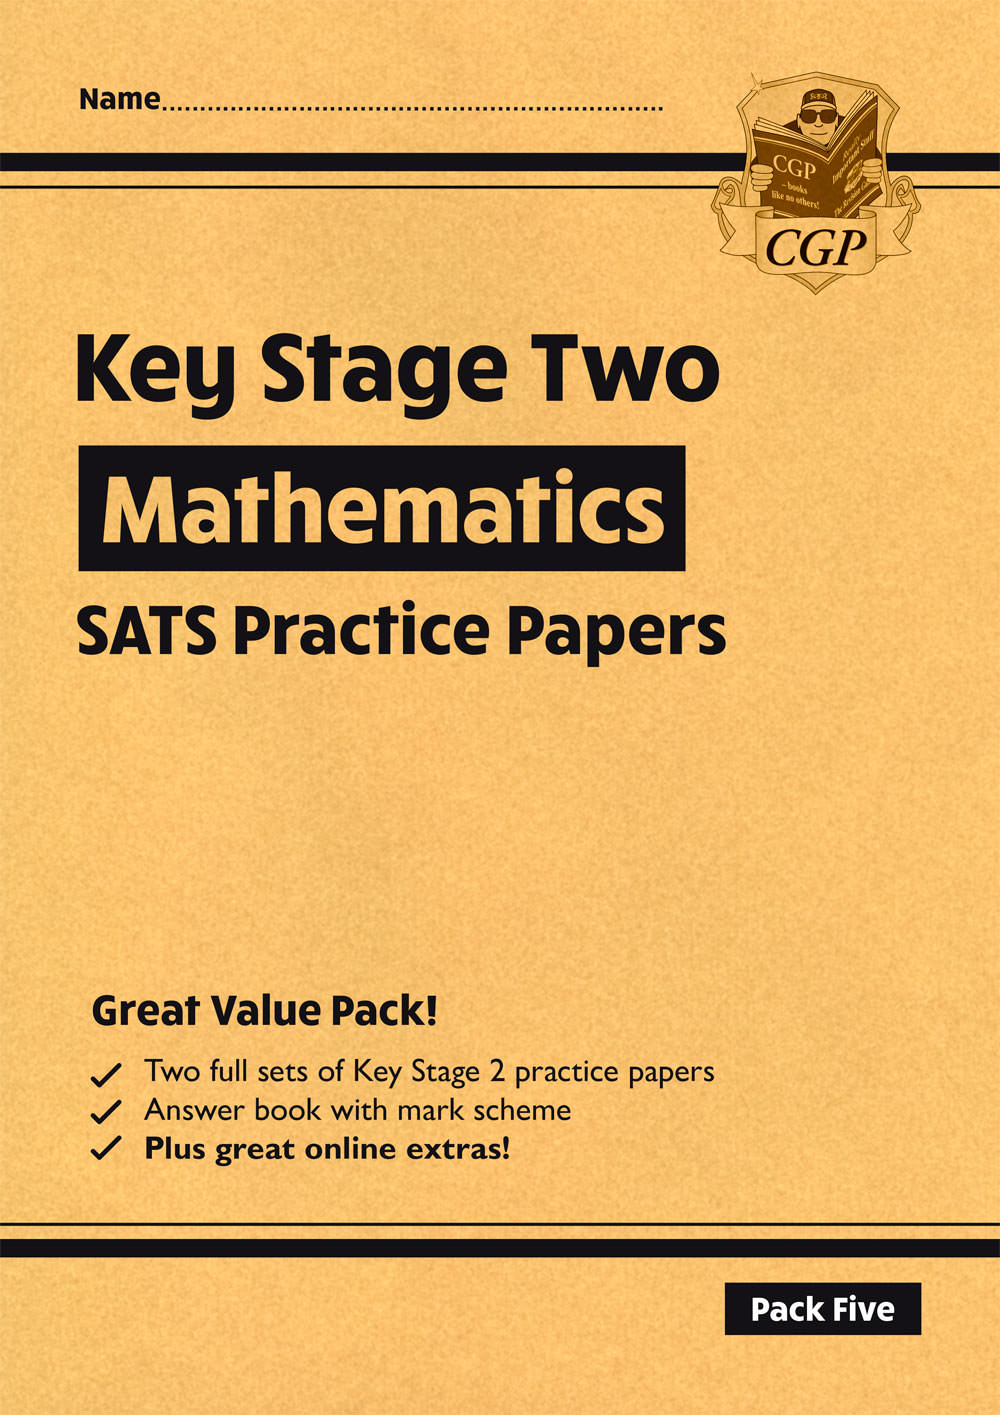 MHP26 - New KS2 Maths SATS Practice Papers: Pack 5 - for the 2021 tests (with free Online Extras)